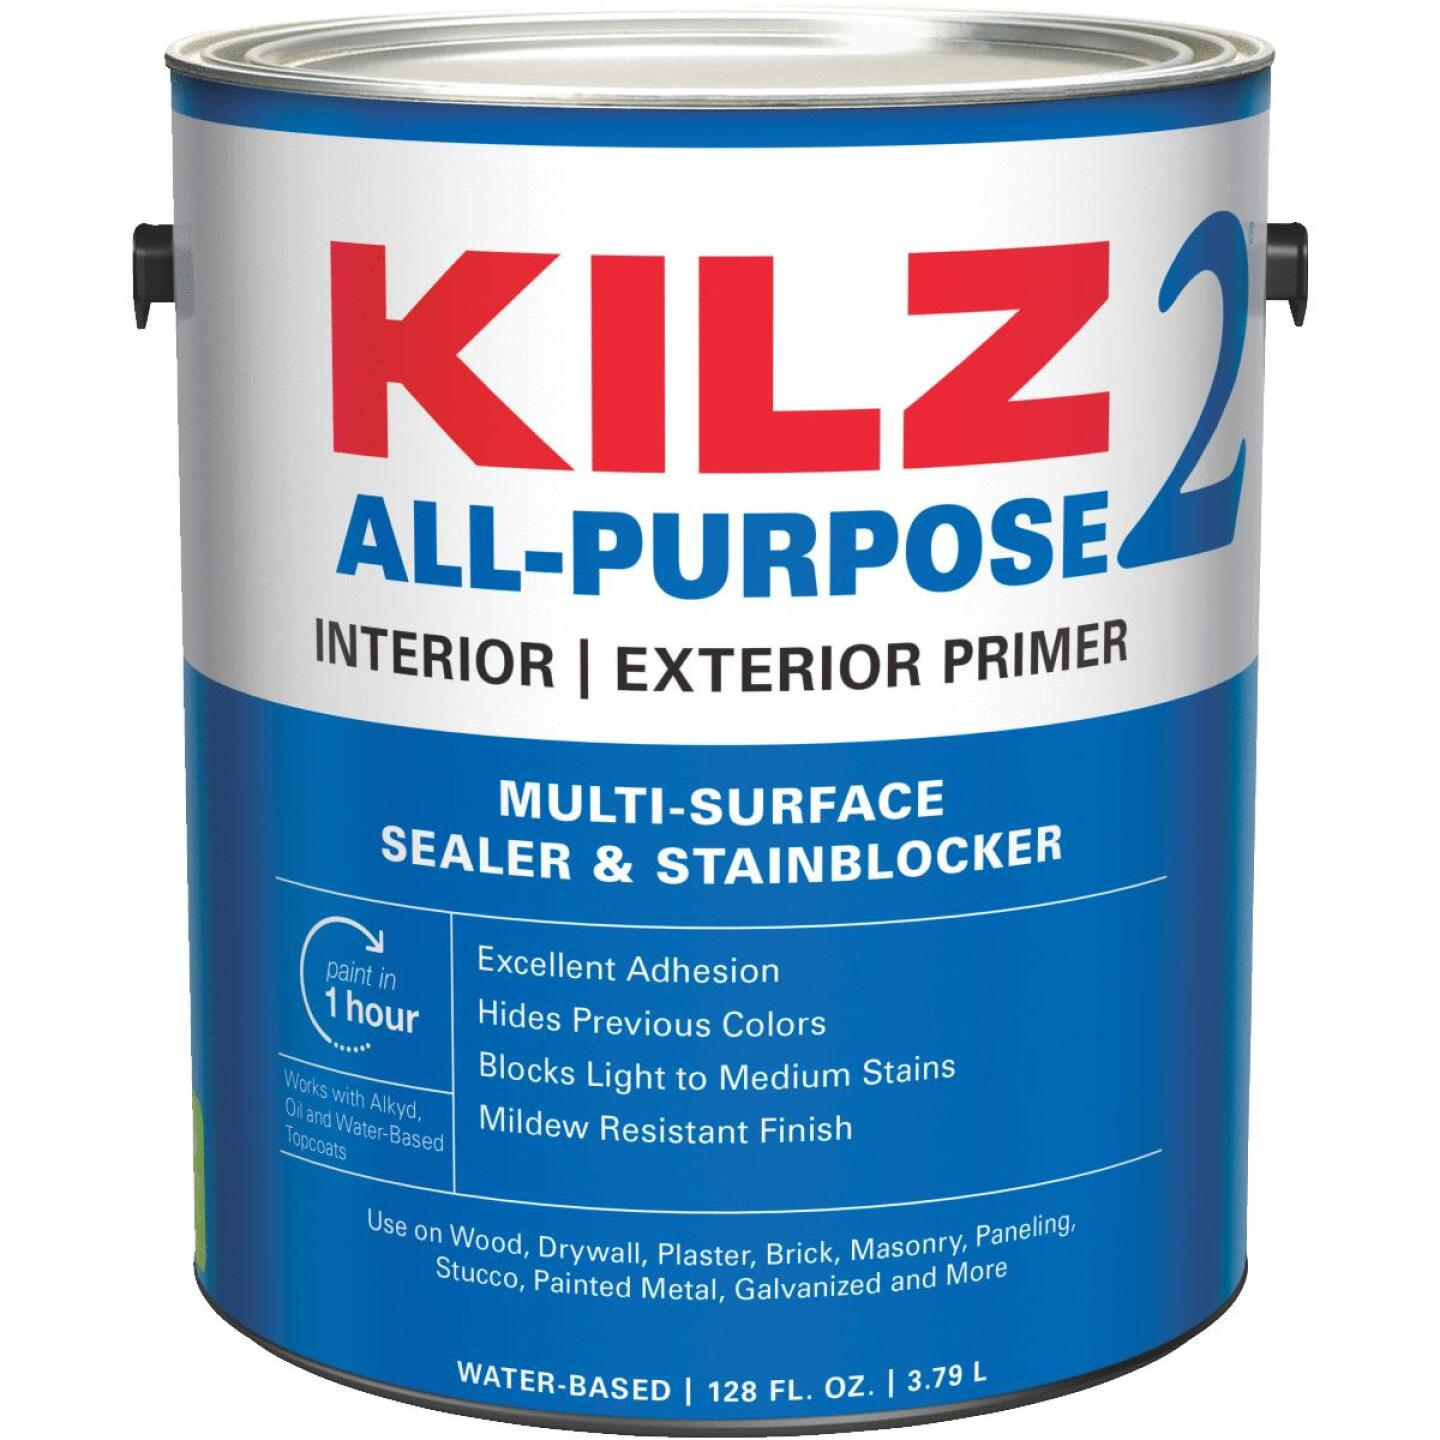 KILZ 2 Latex Interior/Exterior Sealer Stain Blocking Primer, White, 1 Gal. Image 1